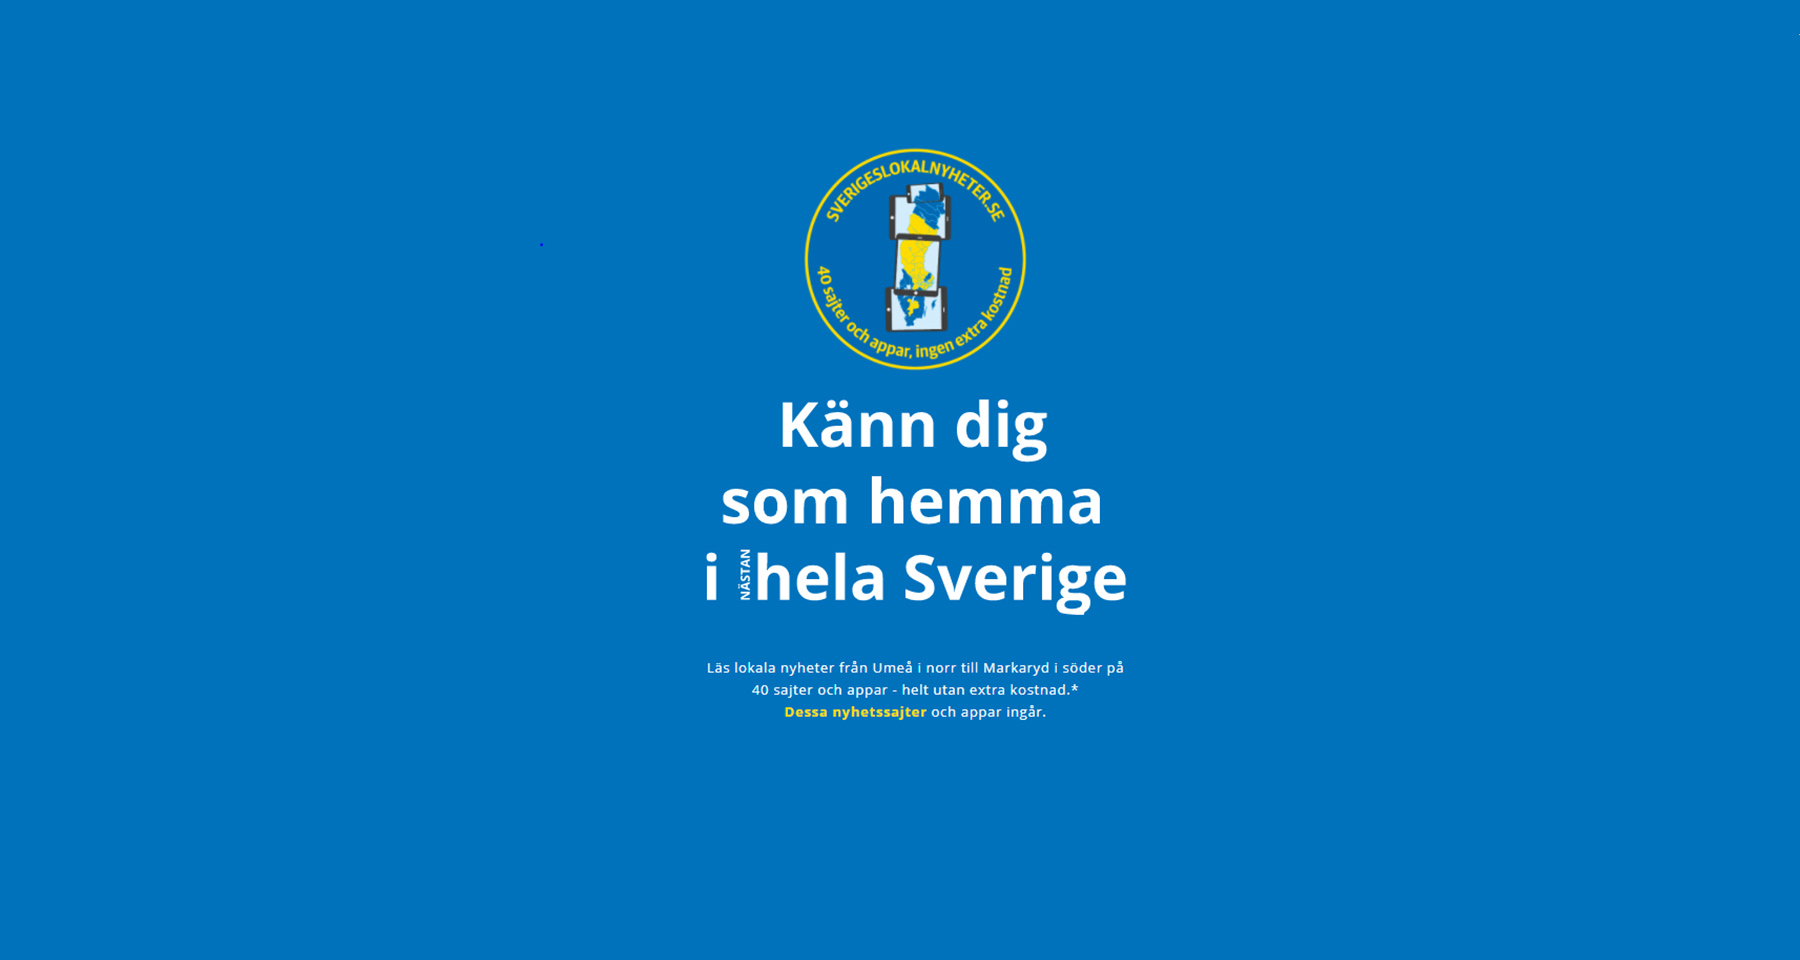 5 Swedish media companies partner to offer subscribers more local content